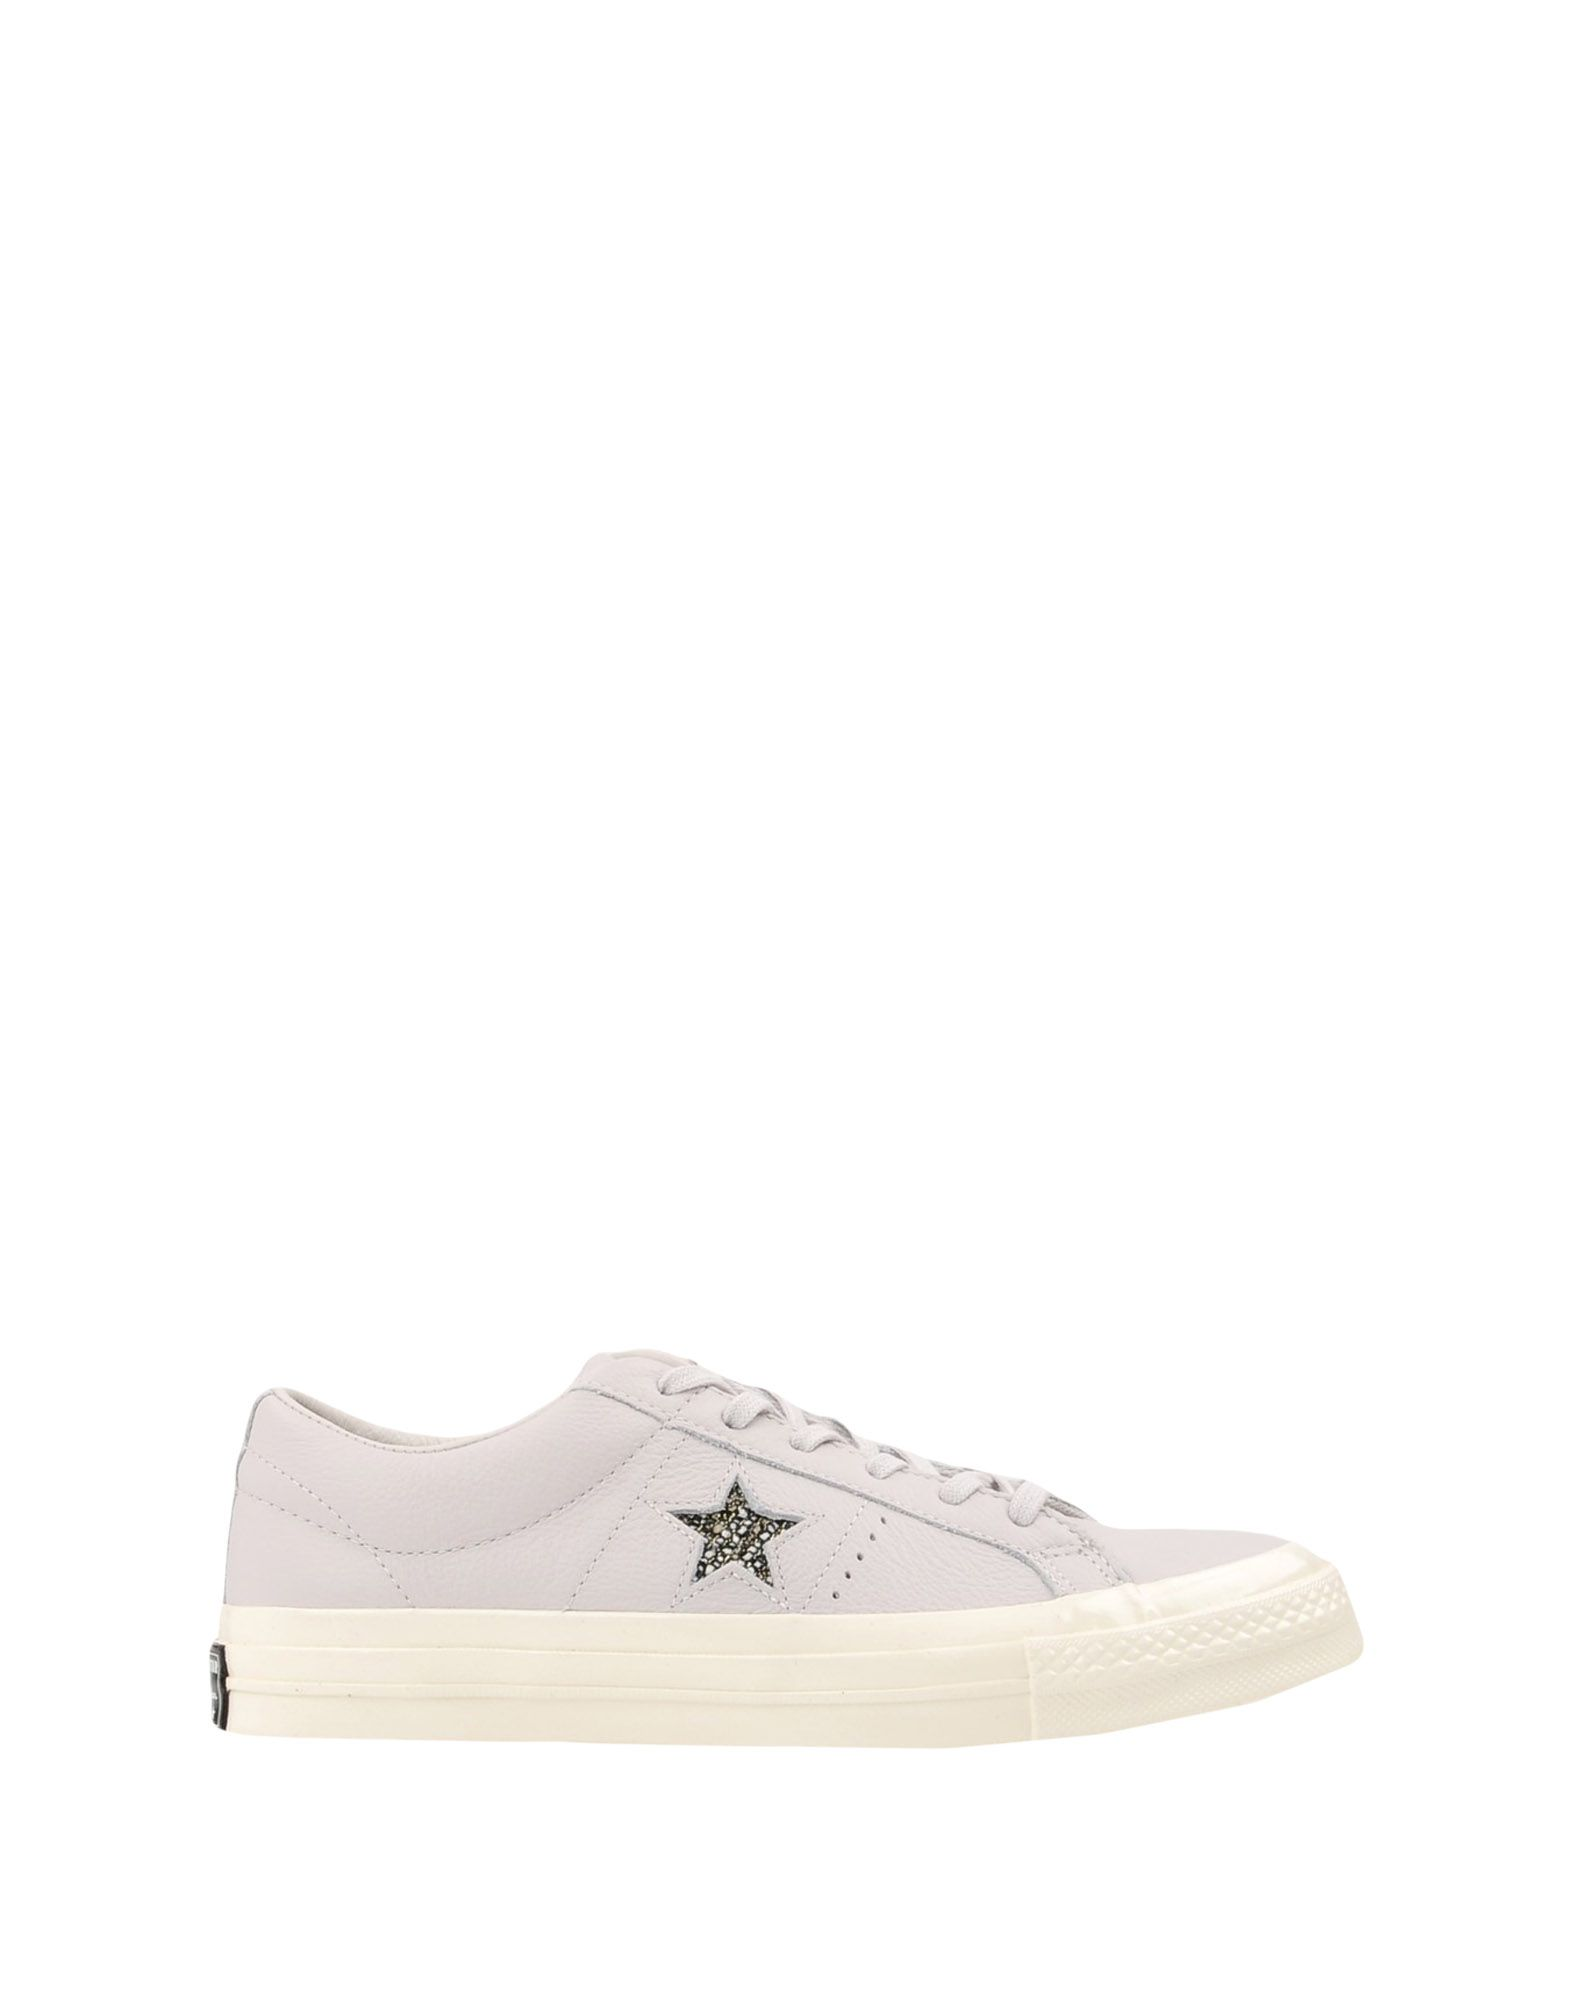 Sneakers Converse All Star One Star Ox Leather - Femme - Sneakers Converse All Star sur